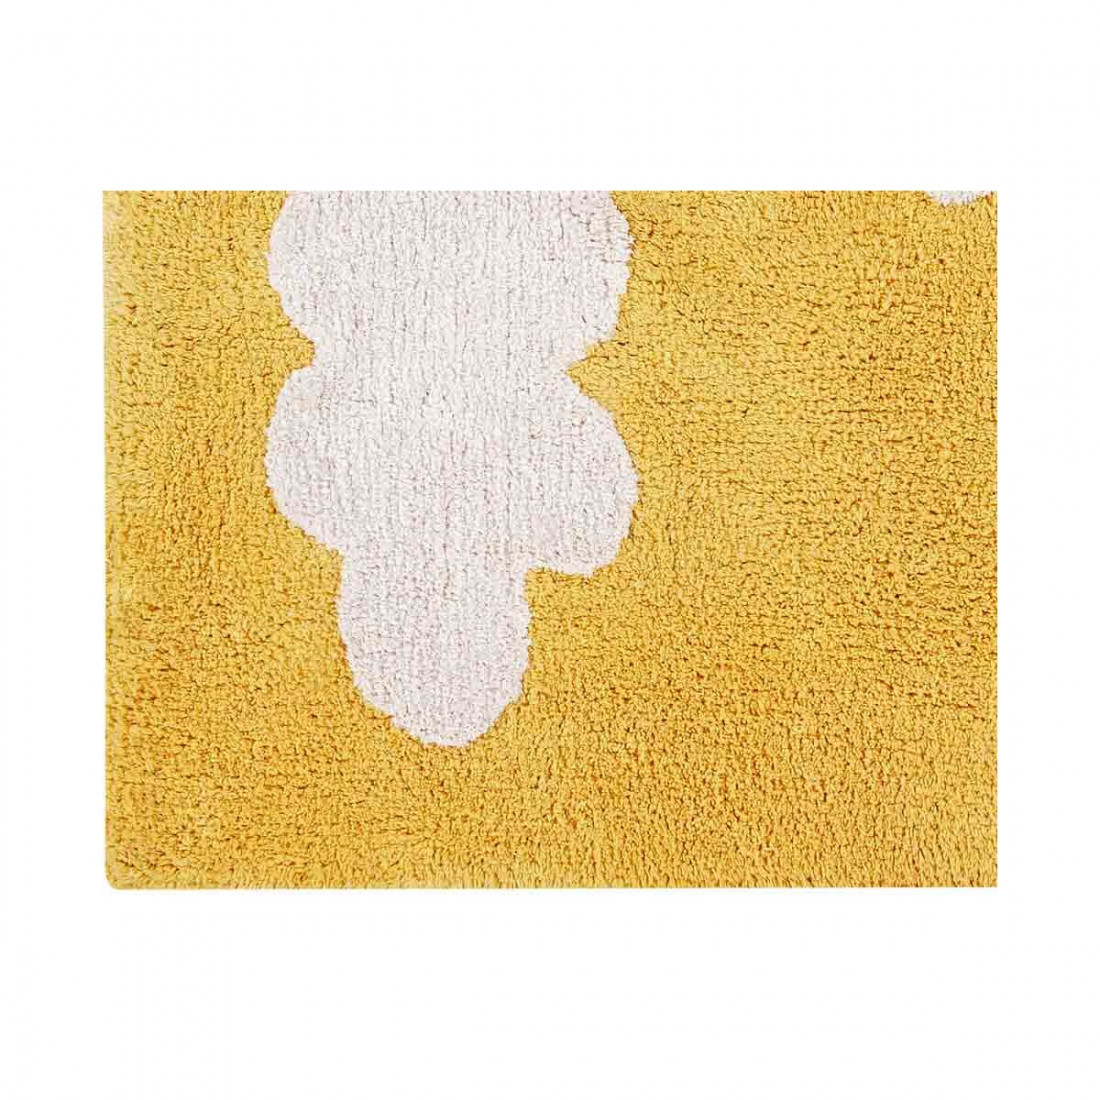 tapis enfant coton lavable jaune moutarde nuages blanc lorena canals ma chambramoi. Black Bedroom Furniture Sets. Home Design Ideas